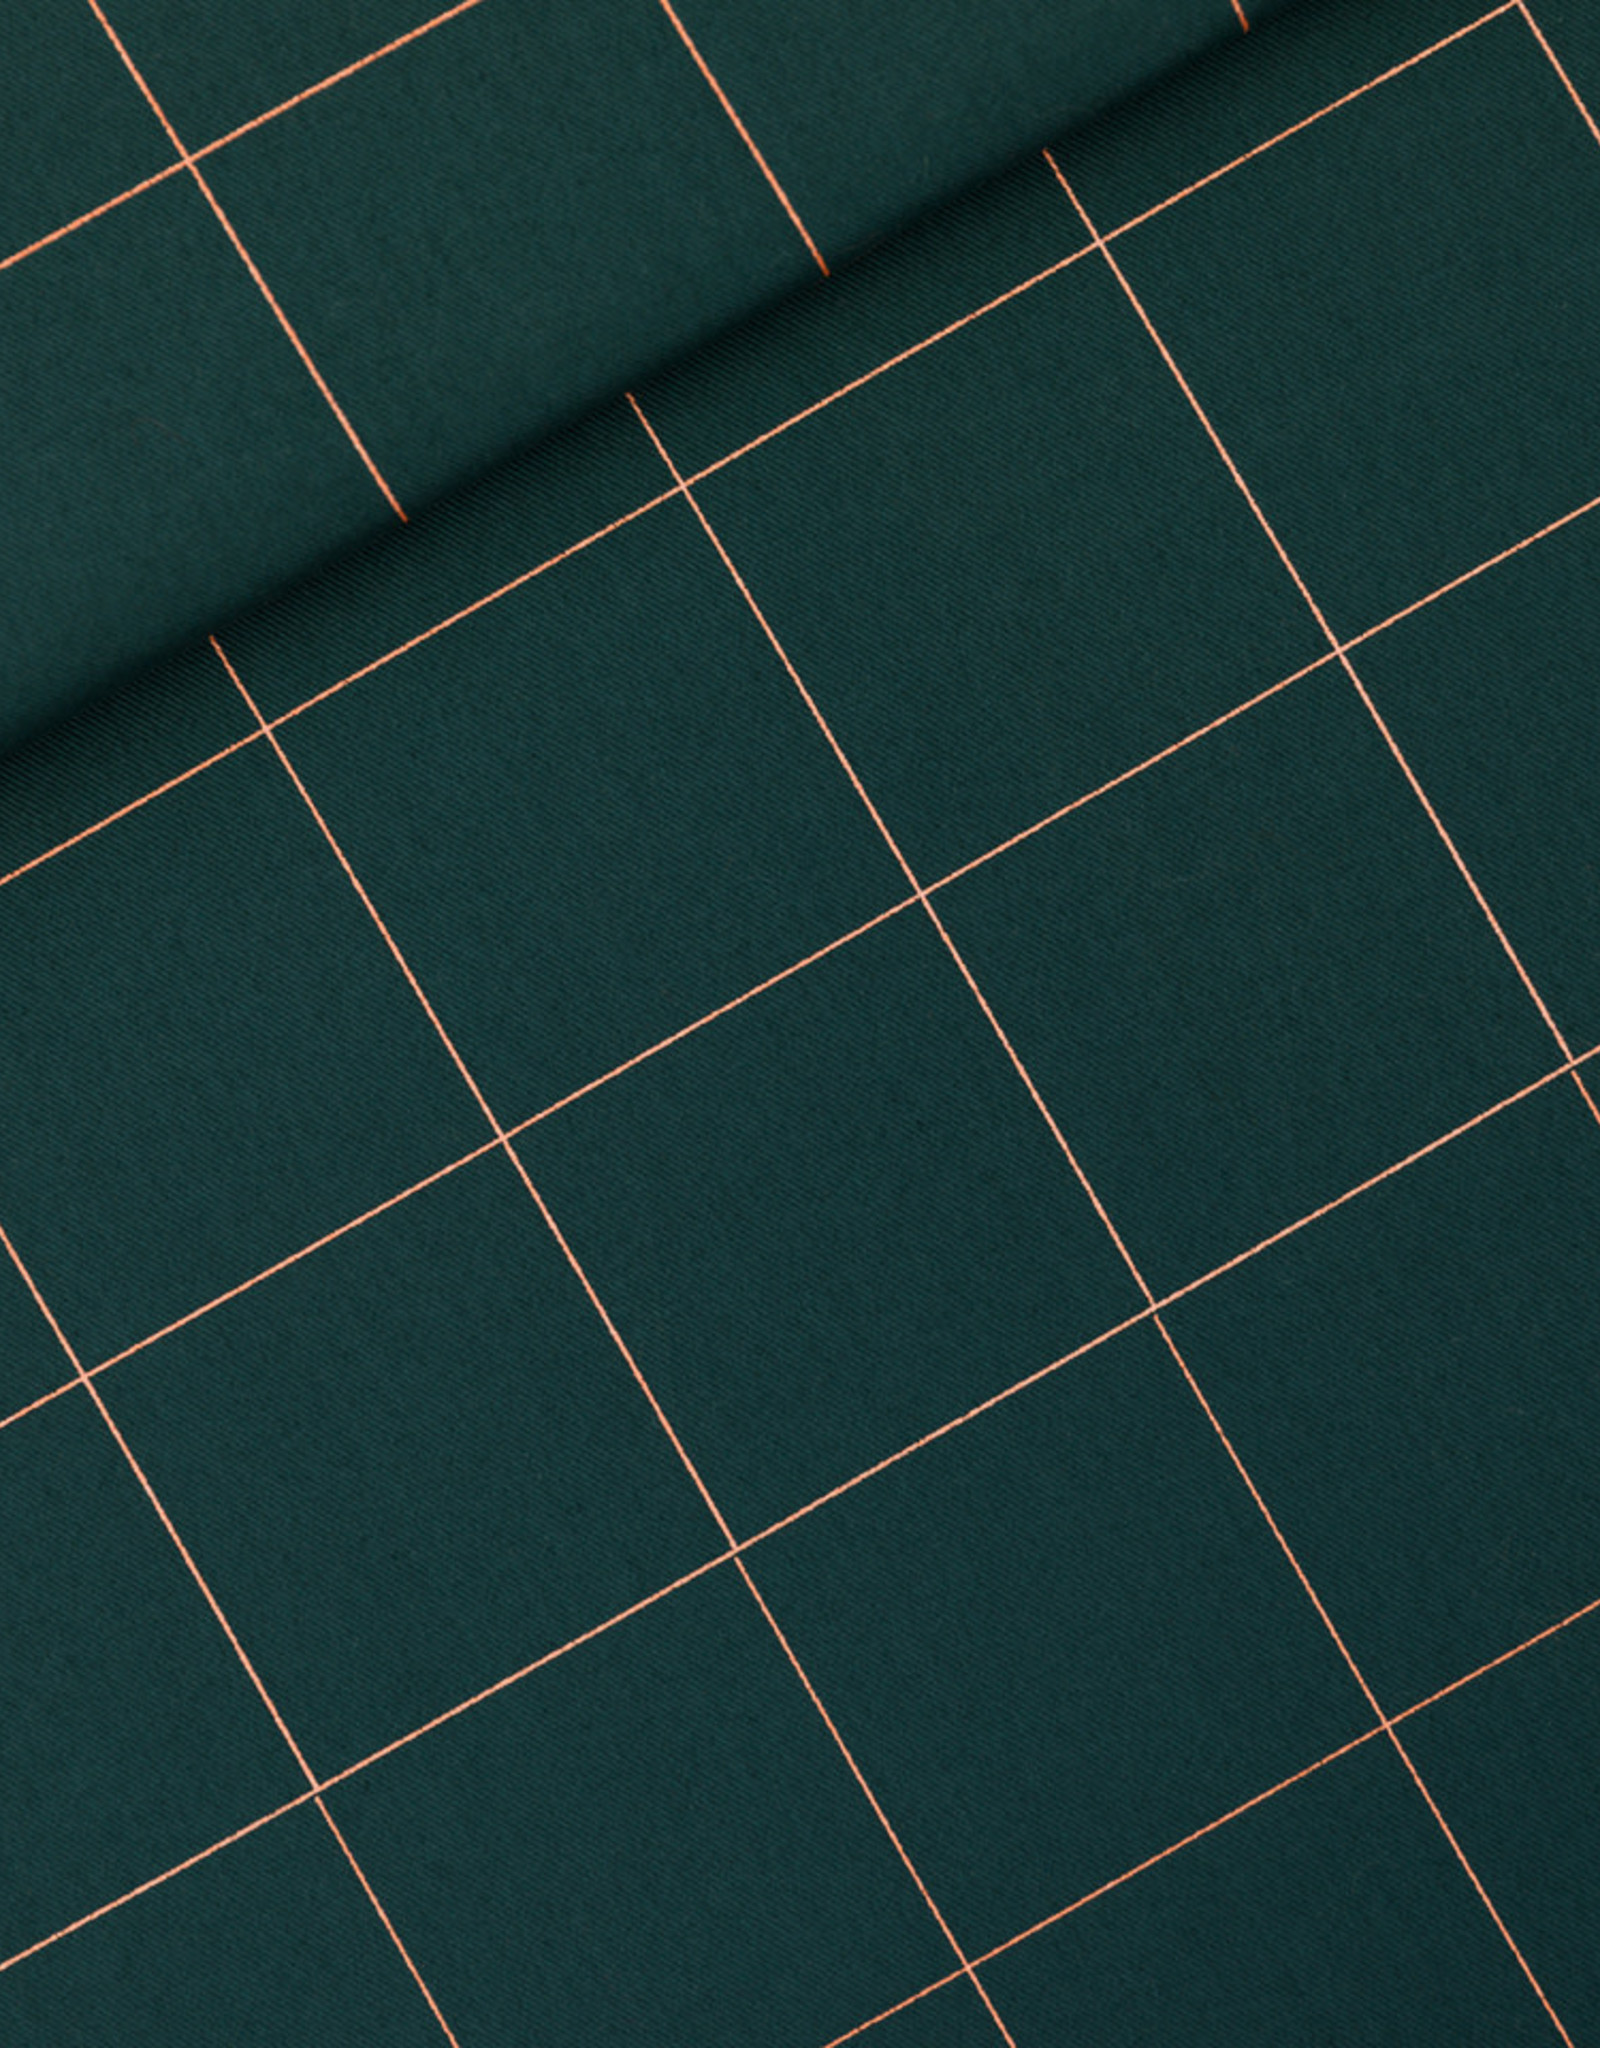 See You At Six Thin Grid XL - cotton canvas gabardine twill  -green gables